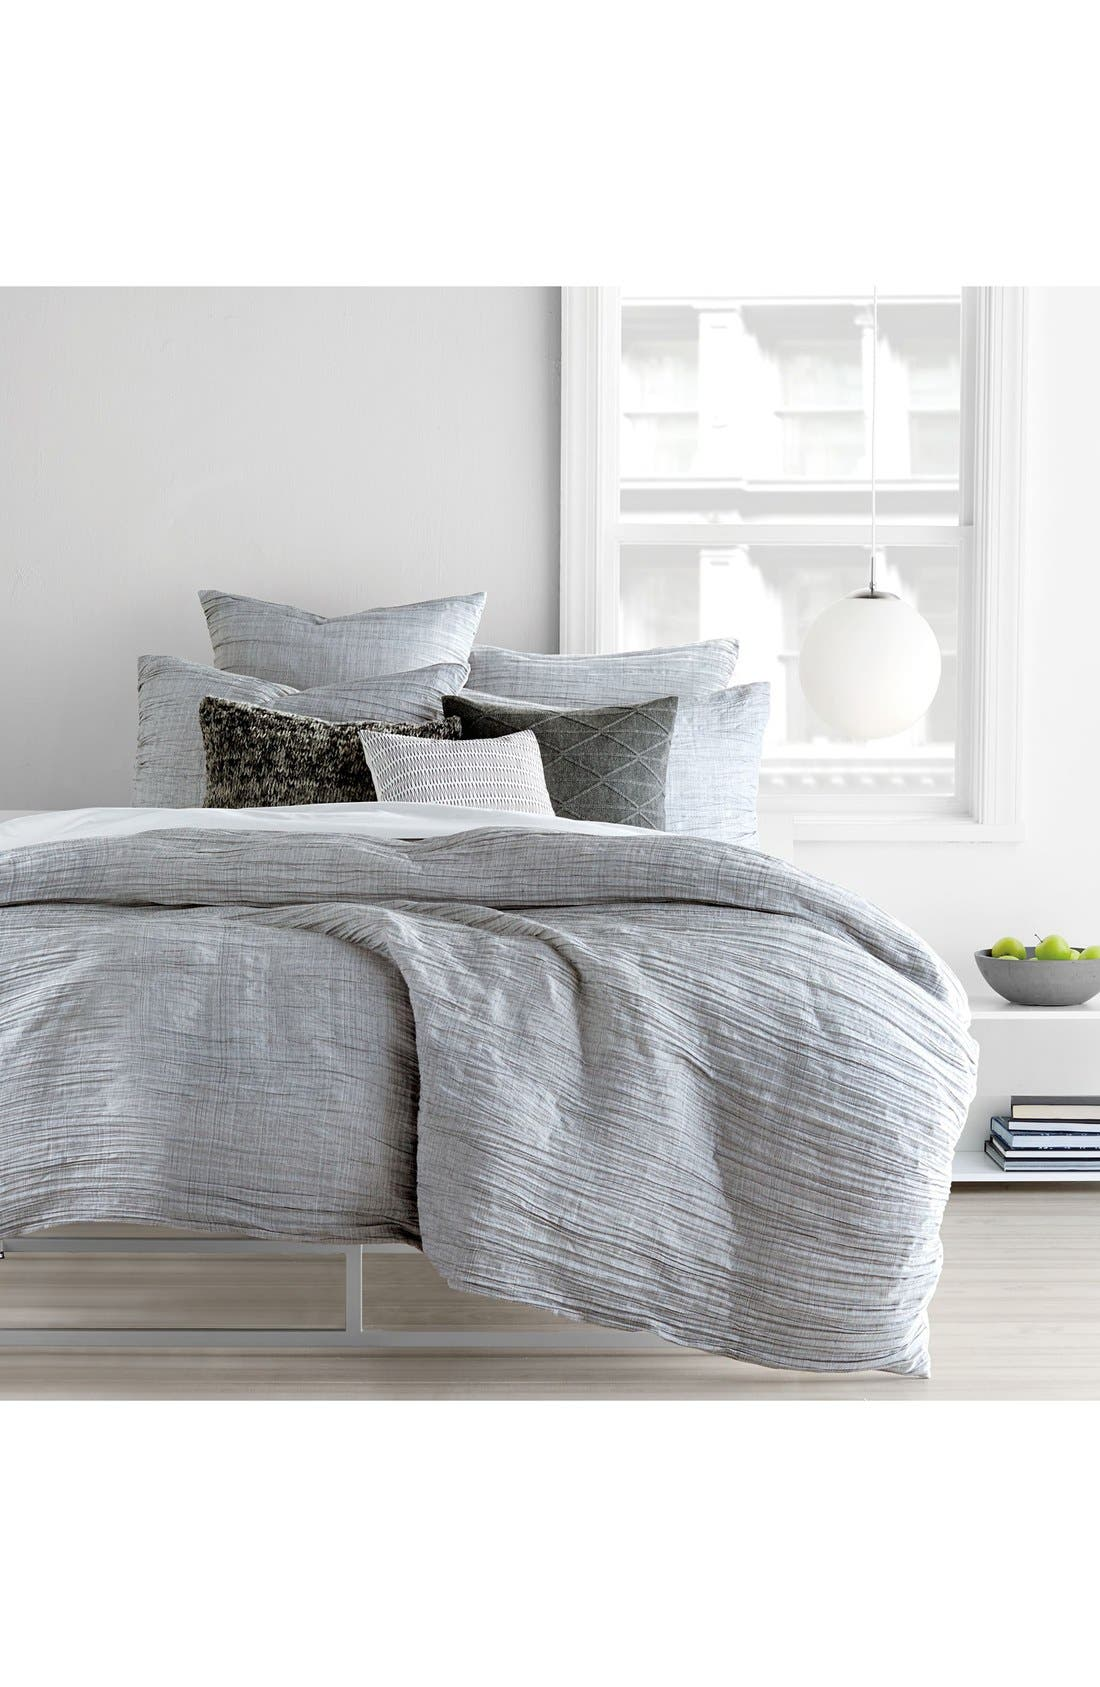 DKNY 'City Pleat' Duvet Cover